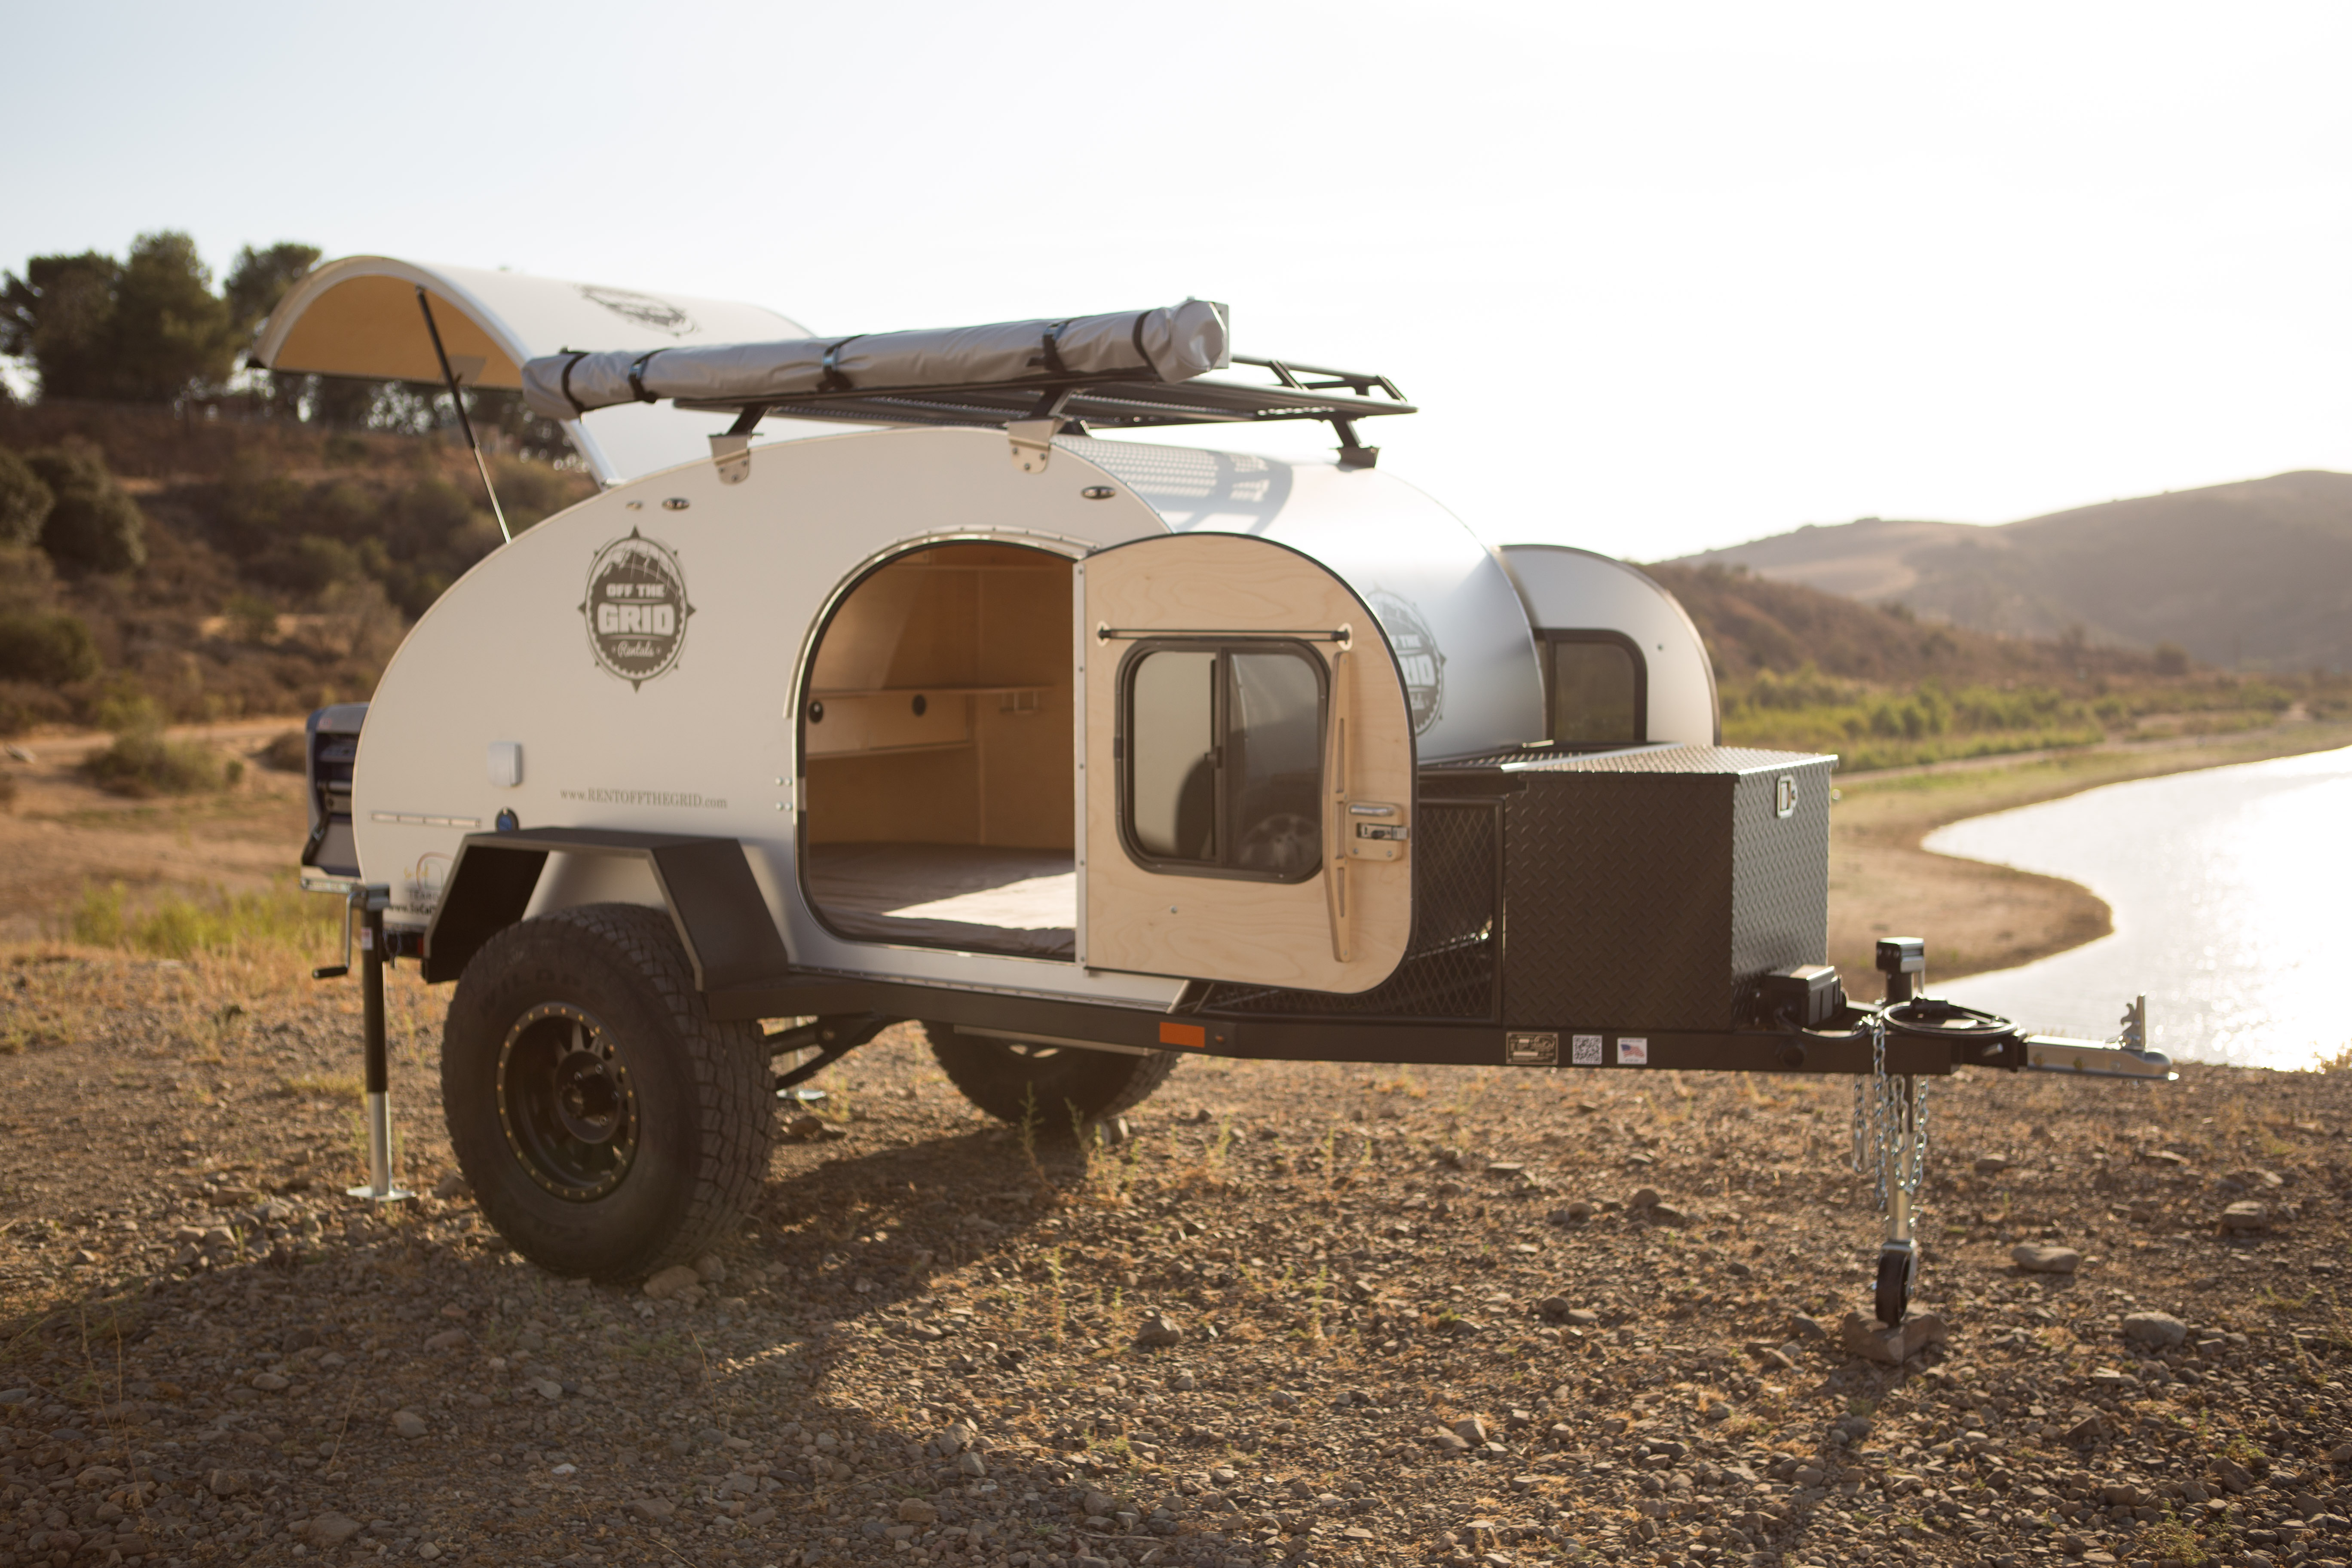 Unique The RV Rental Business Is A $350 Million Industry And Is Continuing To Grow, According To The Recreational Vehicle Industry Association RVIA Exploration